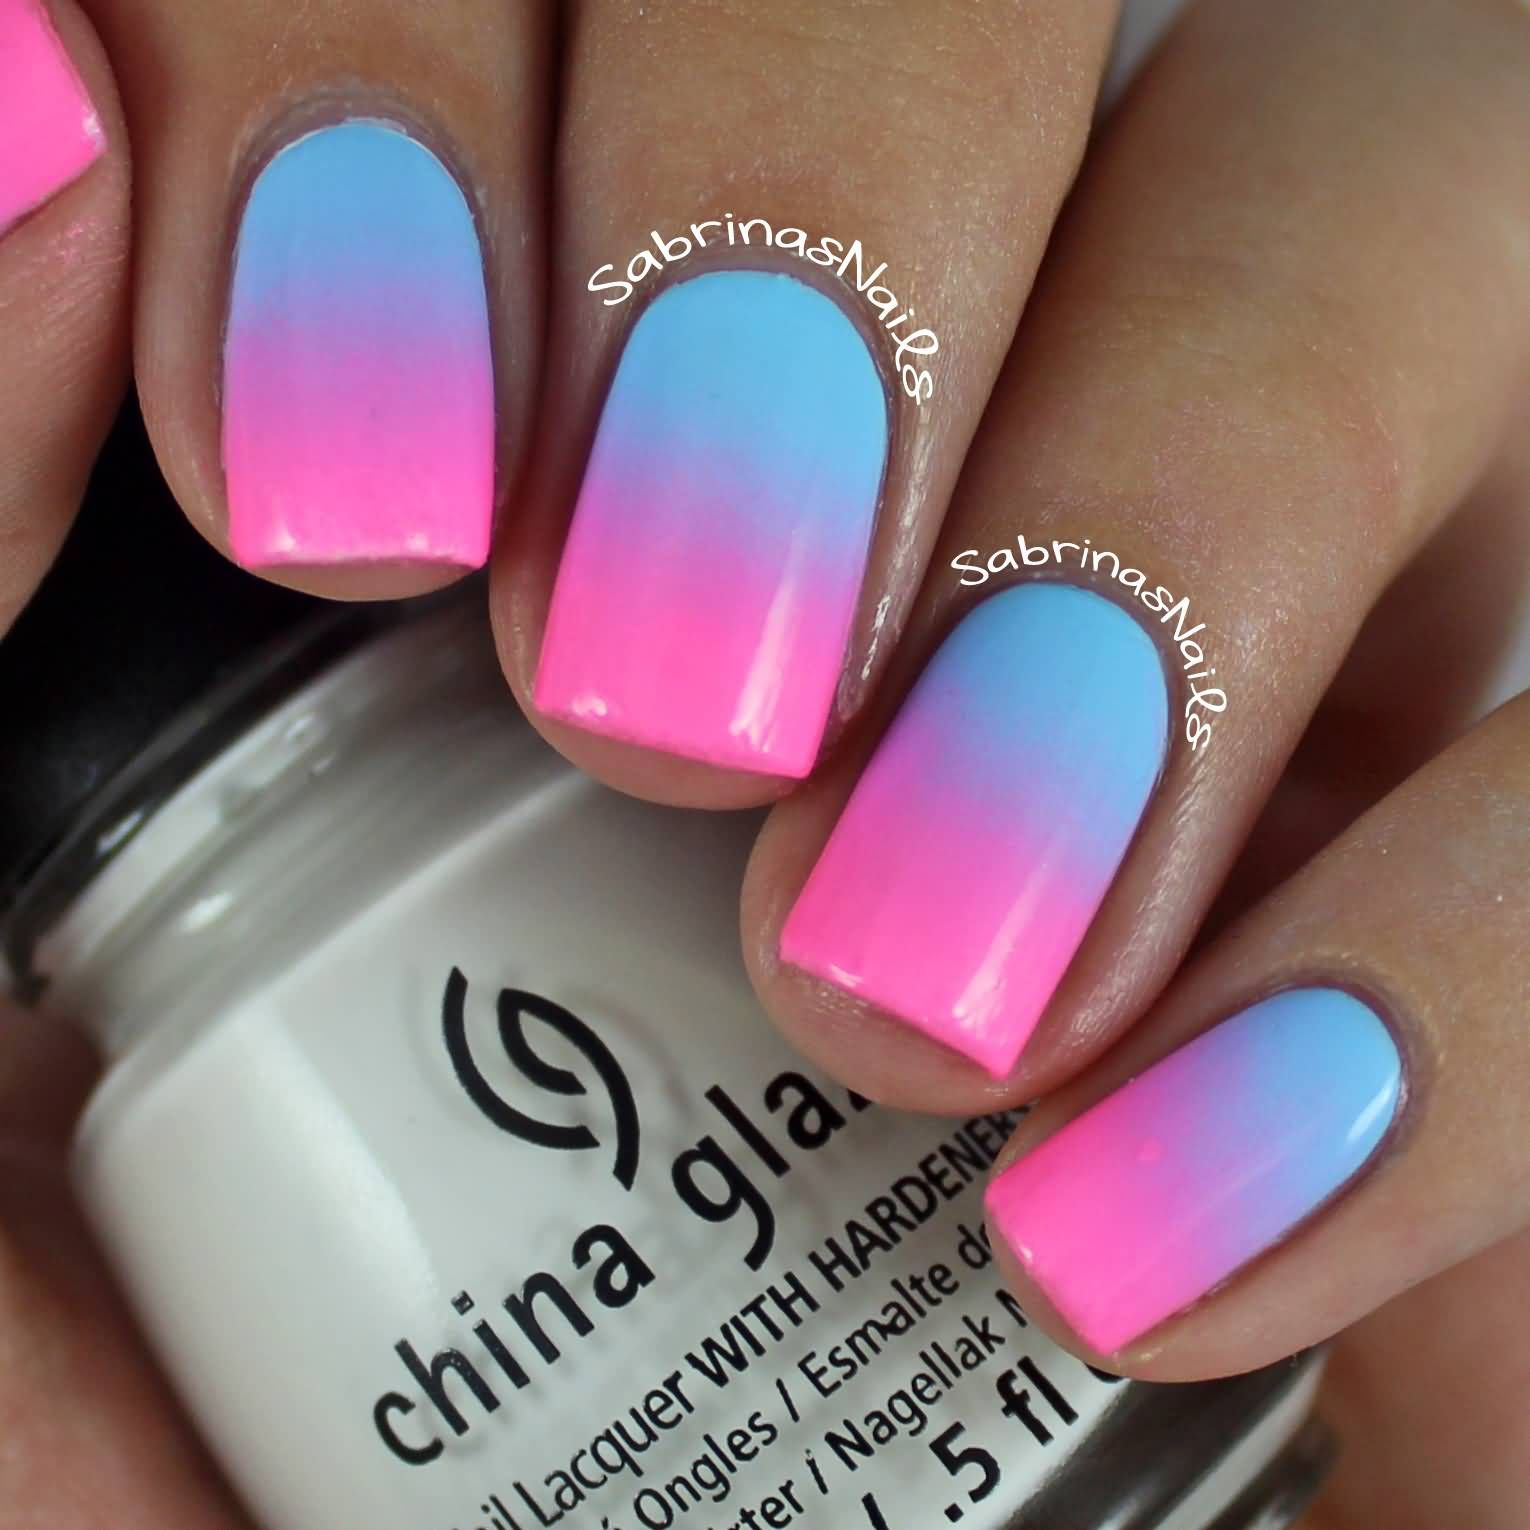 25 Best Blue Ombre Nail Art Design Pictures And Images In 2020 Blue Ombre Nails Ombre Nail Designs Pink Ombre Nail Art